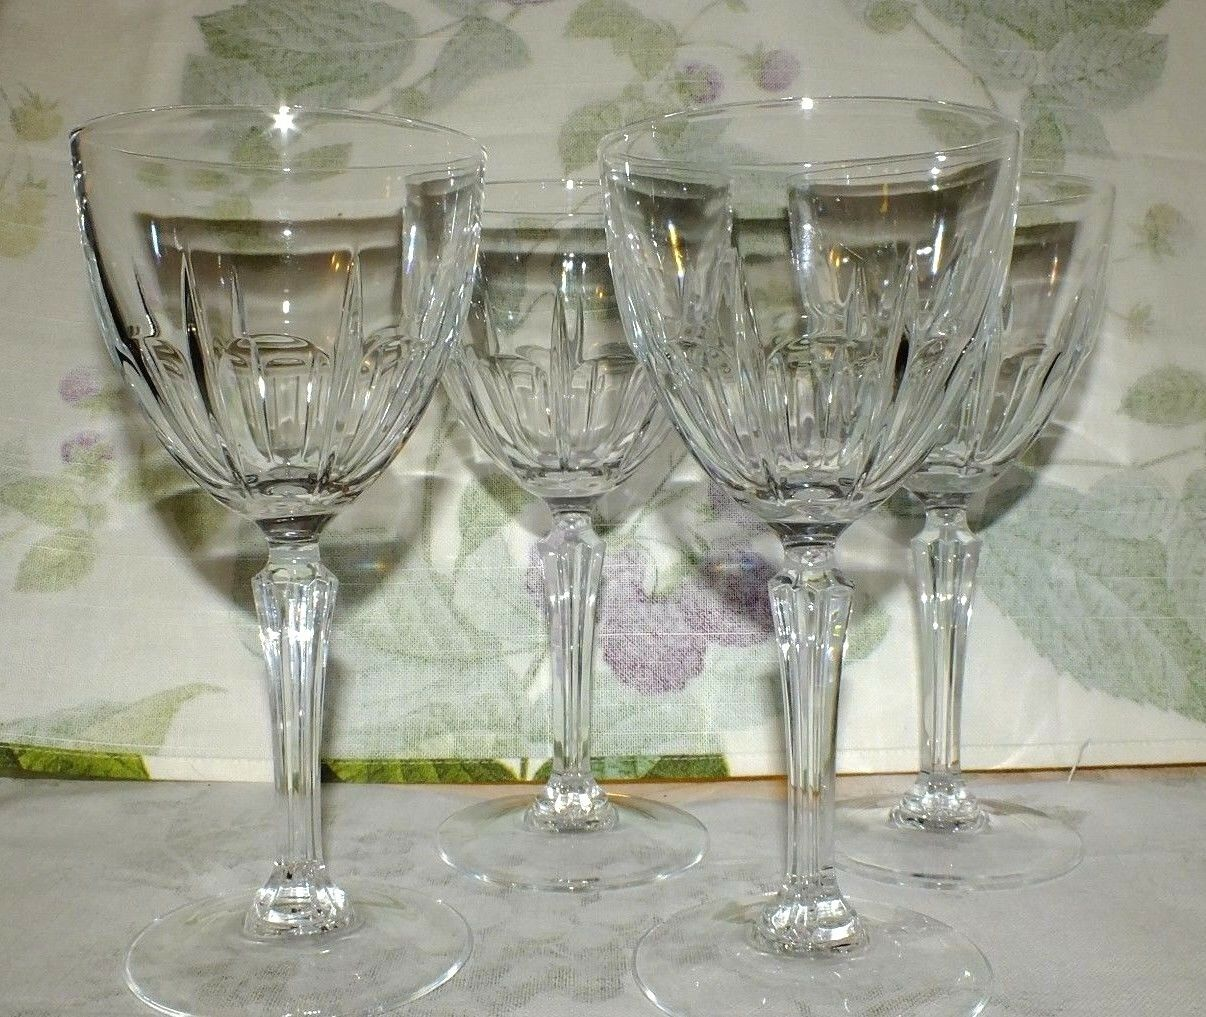 cristal d 39 arques bergerac water goblets set of 4 exc 33. Black Bedroom Furniture Sets. Home Design Ideas